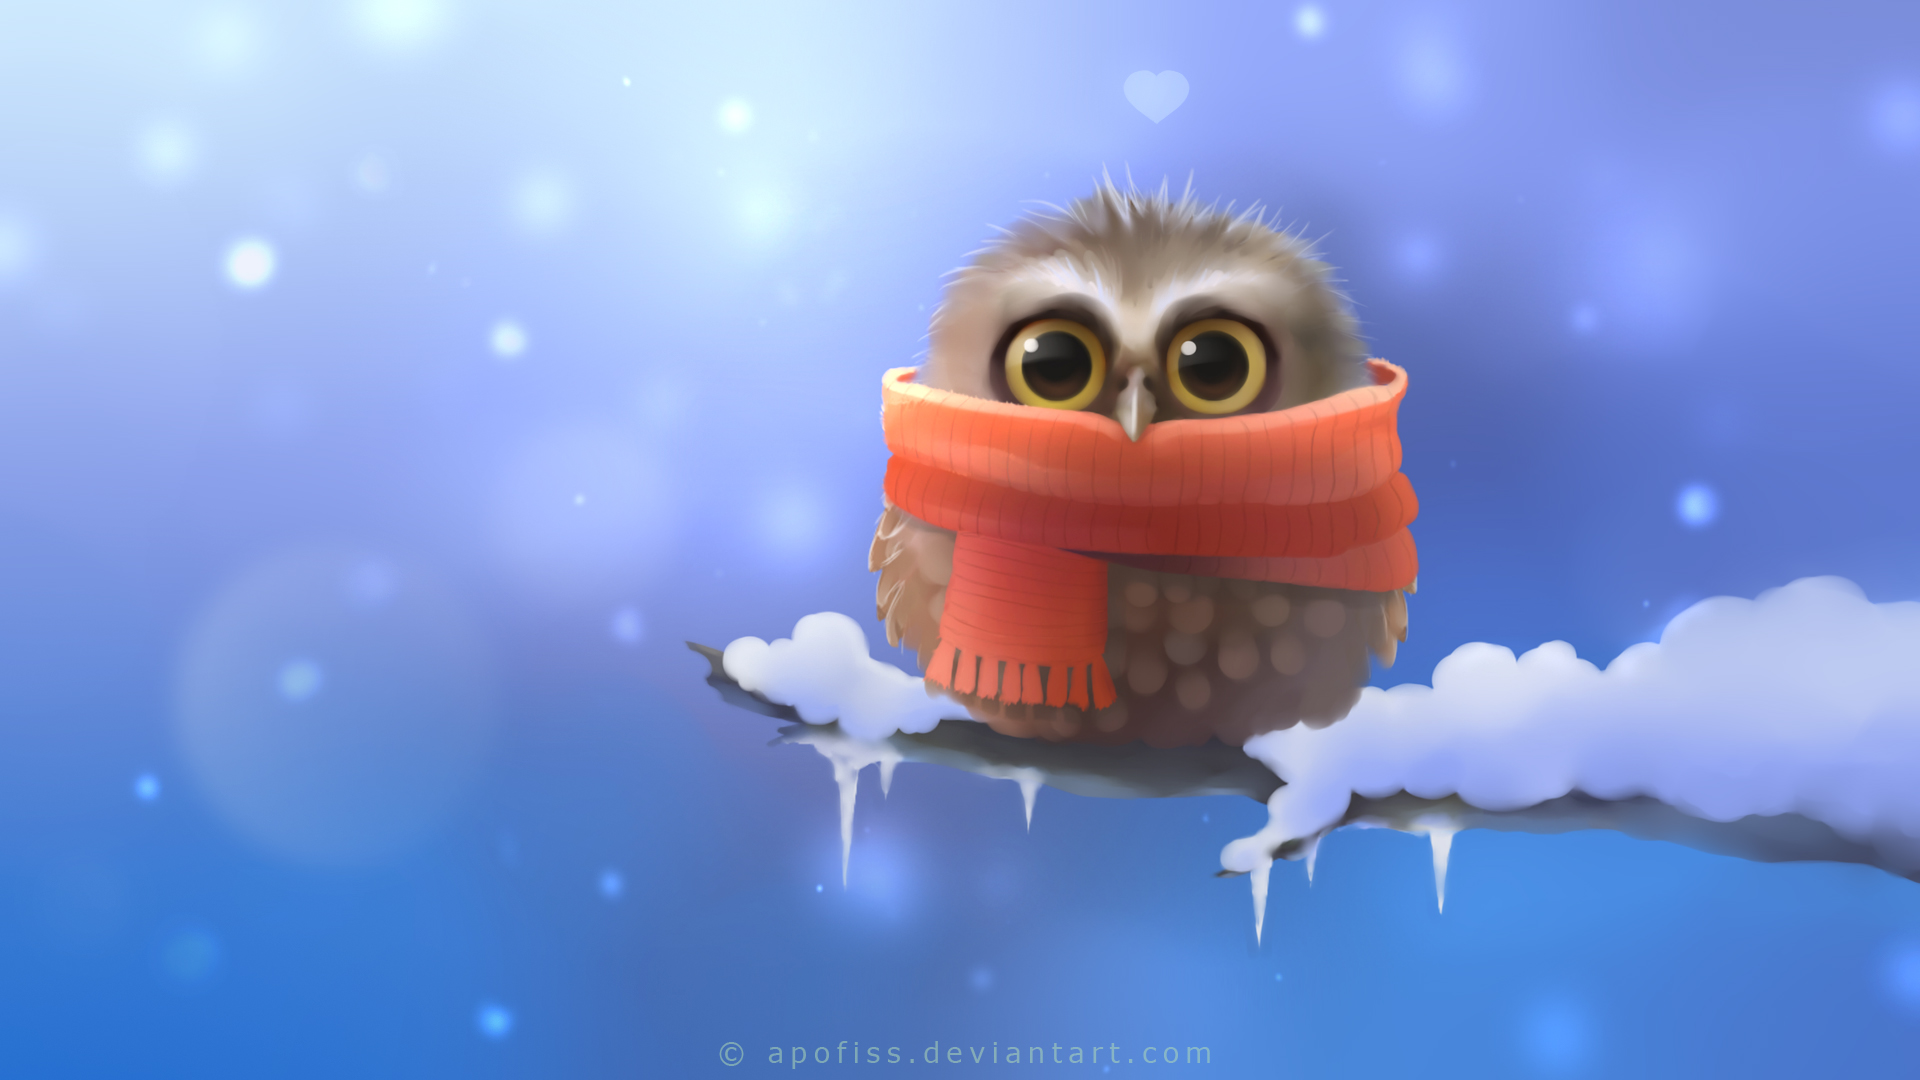 Hd wallpaper cute - Cute Owl Wallpapers Hd Wallpapers